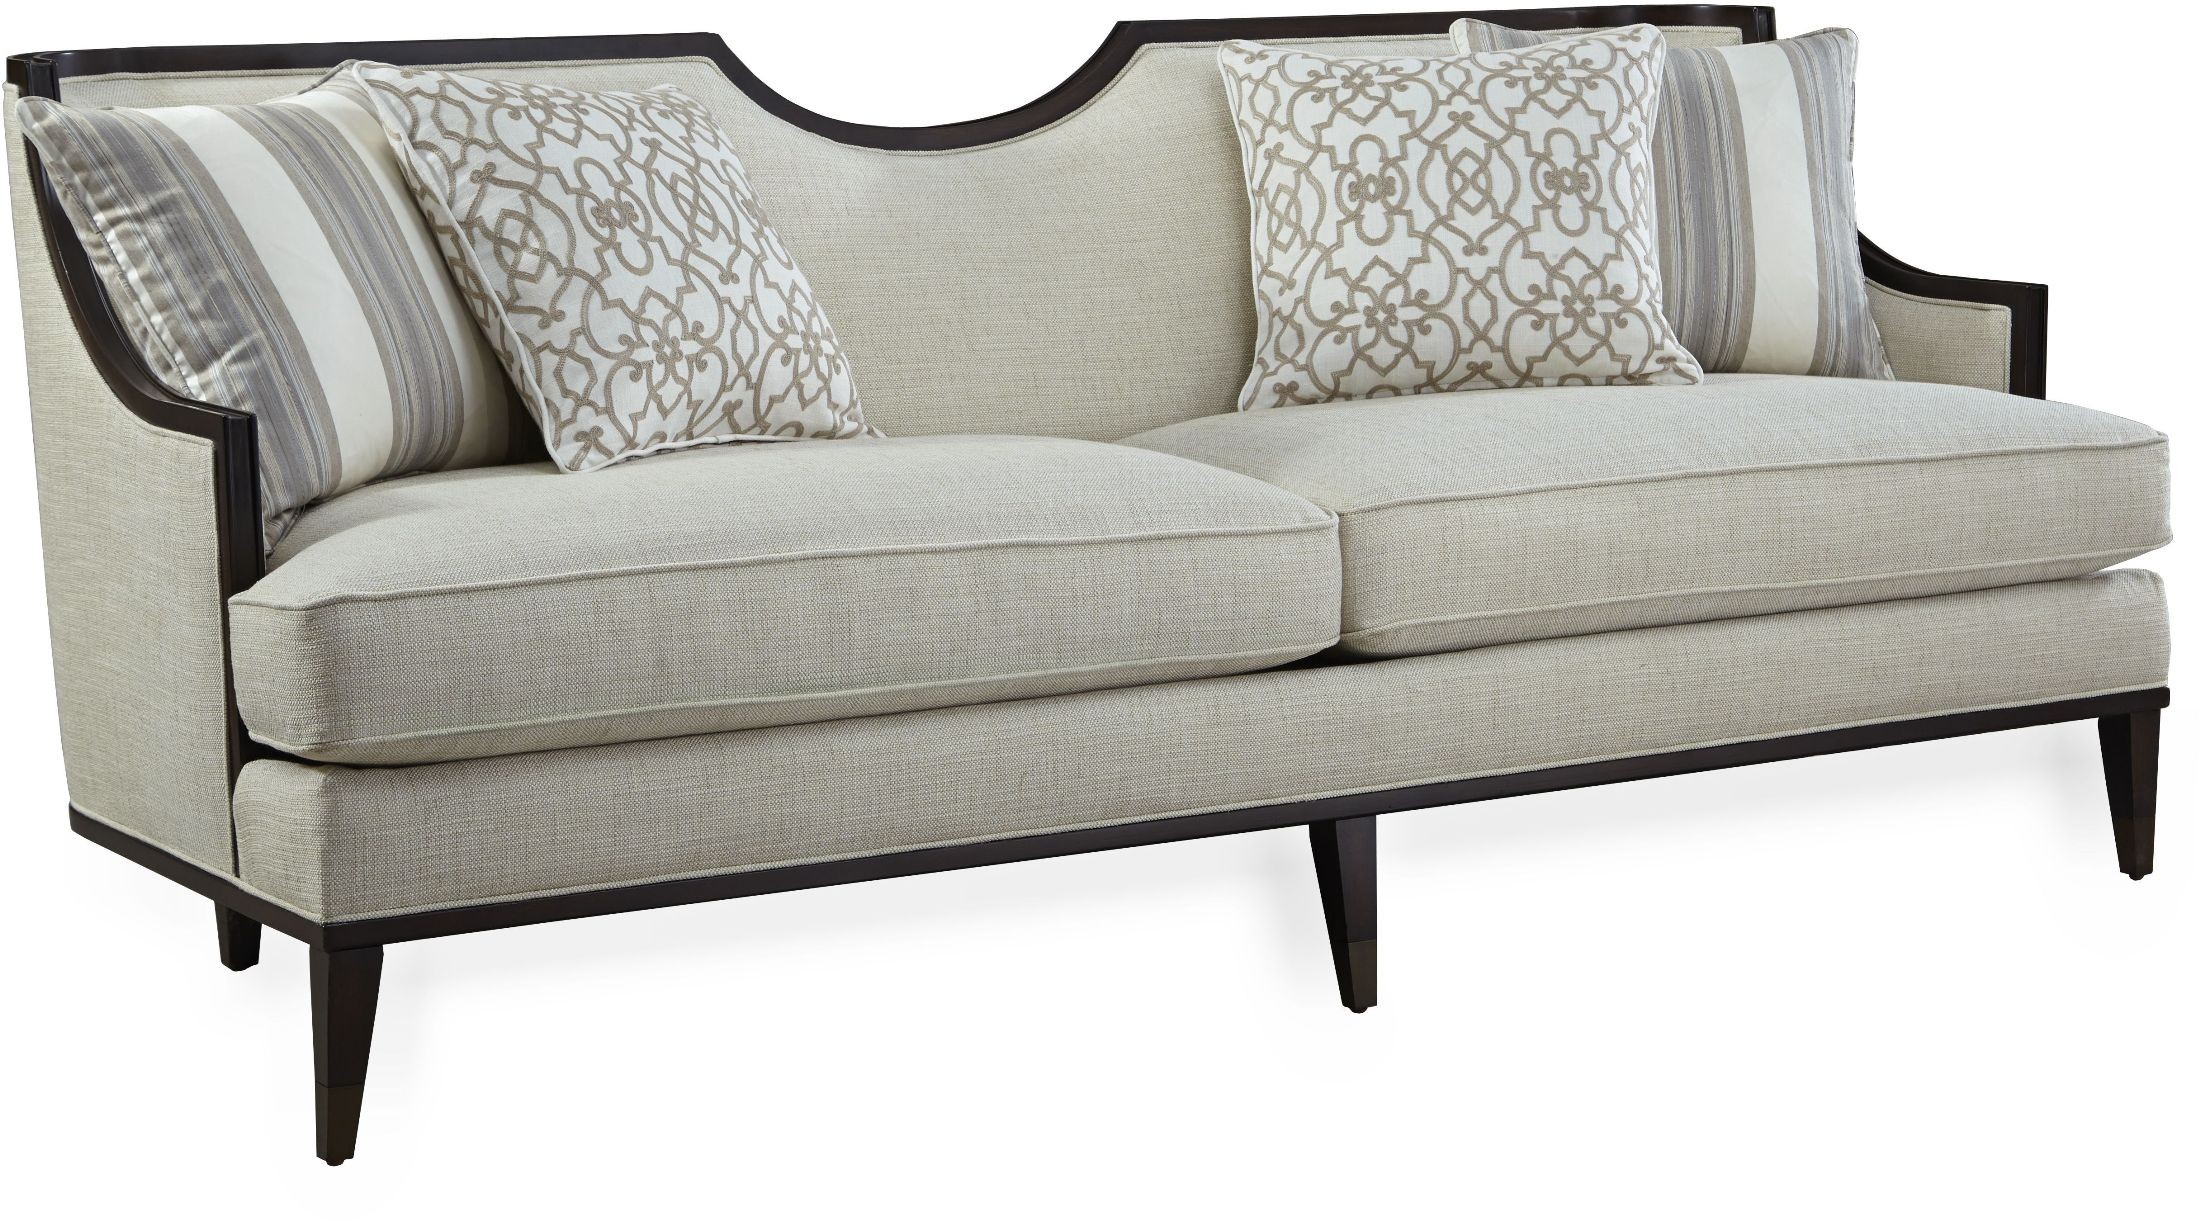 Harper Ivory Sofa From Art Coleman Furniture